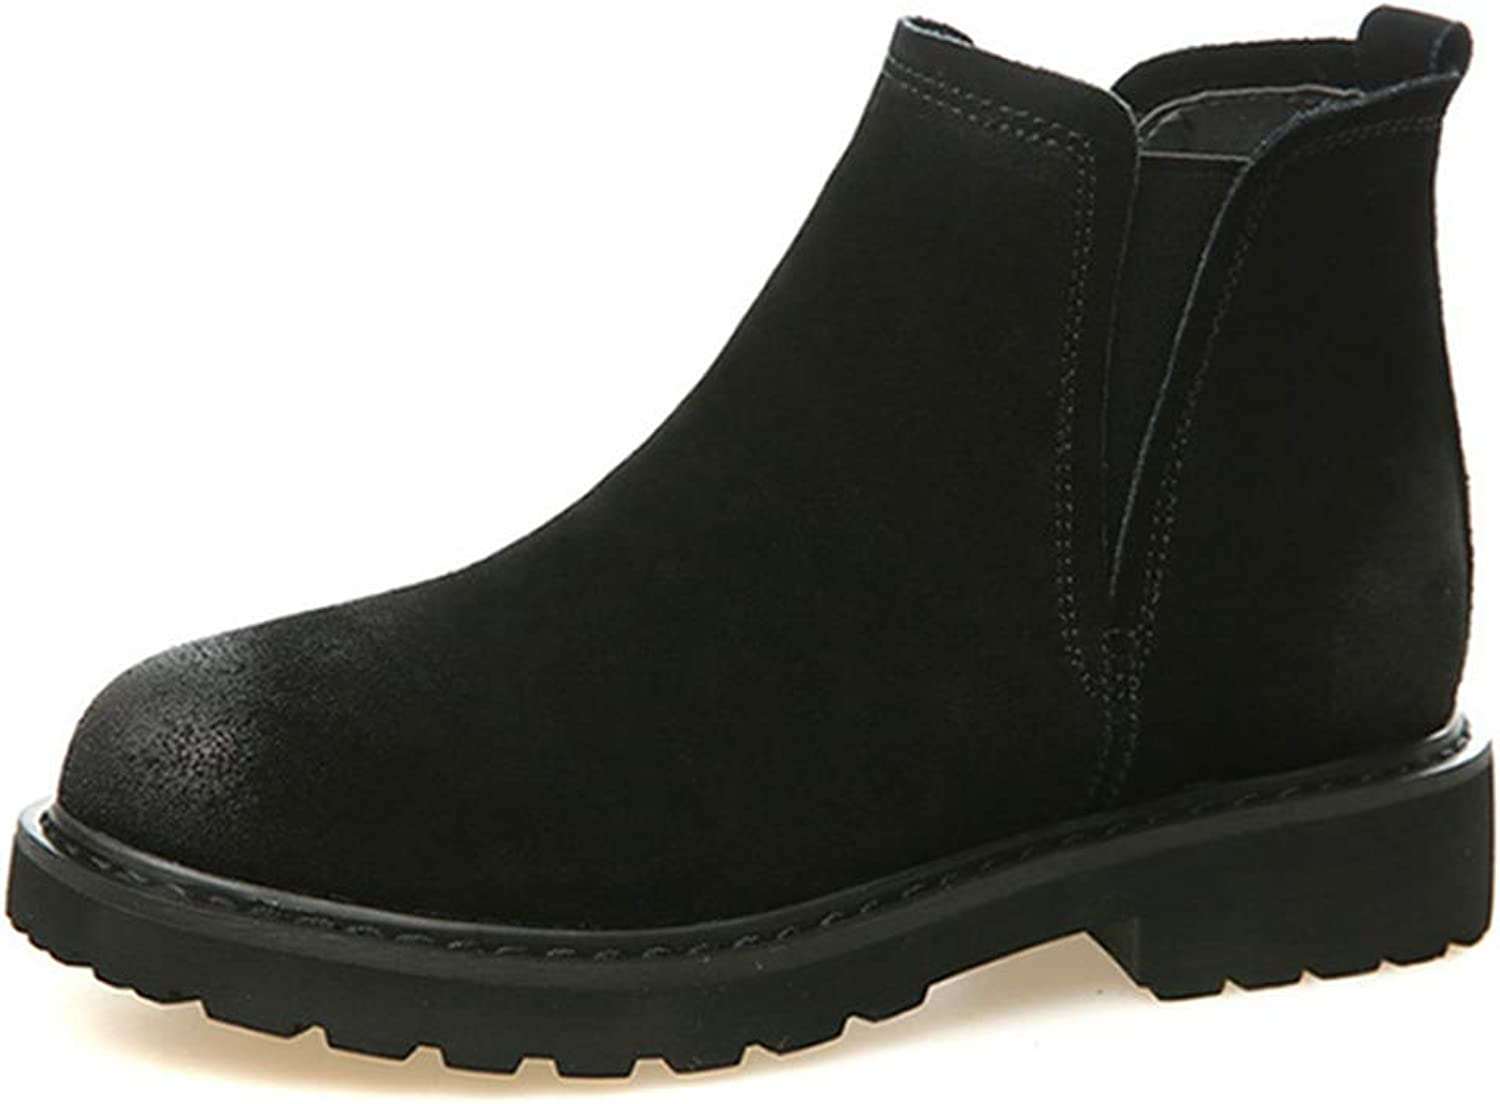 Fay Waters Women's Martin Boots Genuine Leather Pointed Toe Snow Boots Ankle Winter Booties Warm shoes